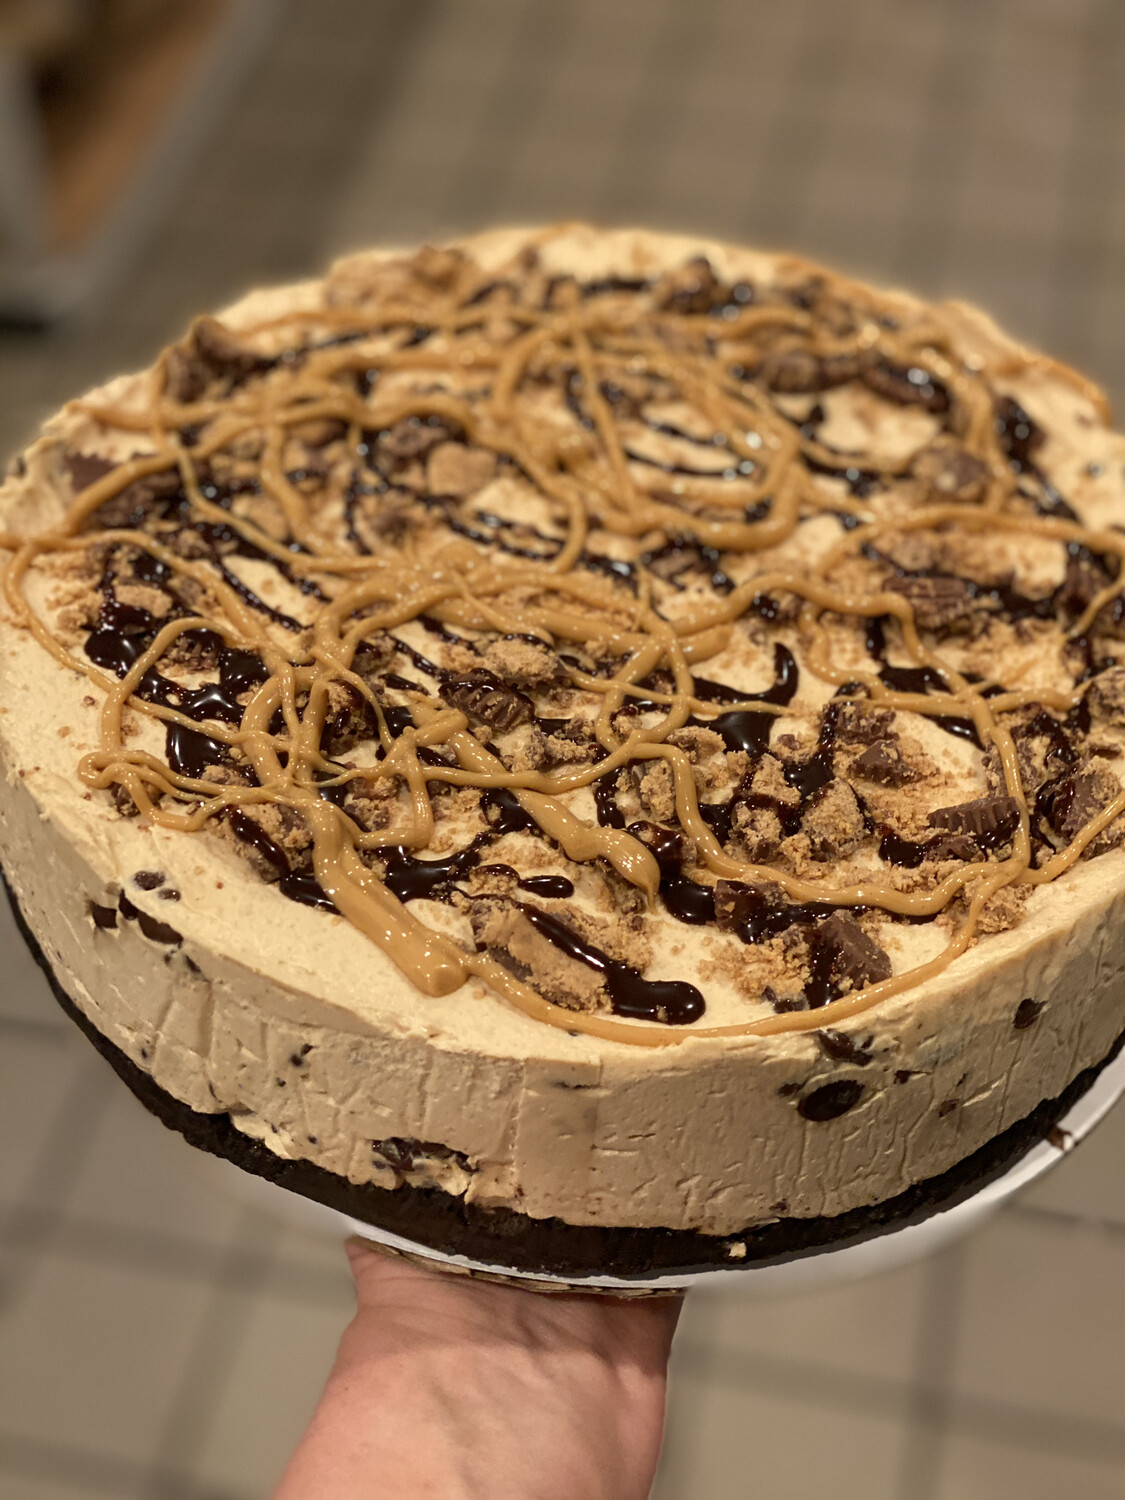 Peanut Butter Chocolate Chip Cheesecake By the slice